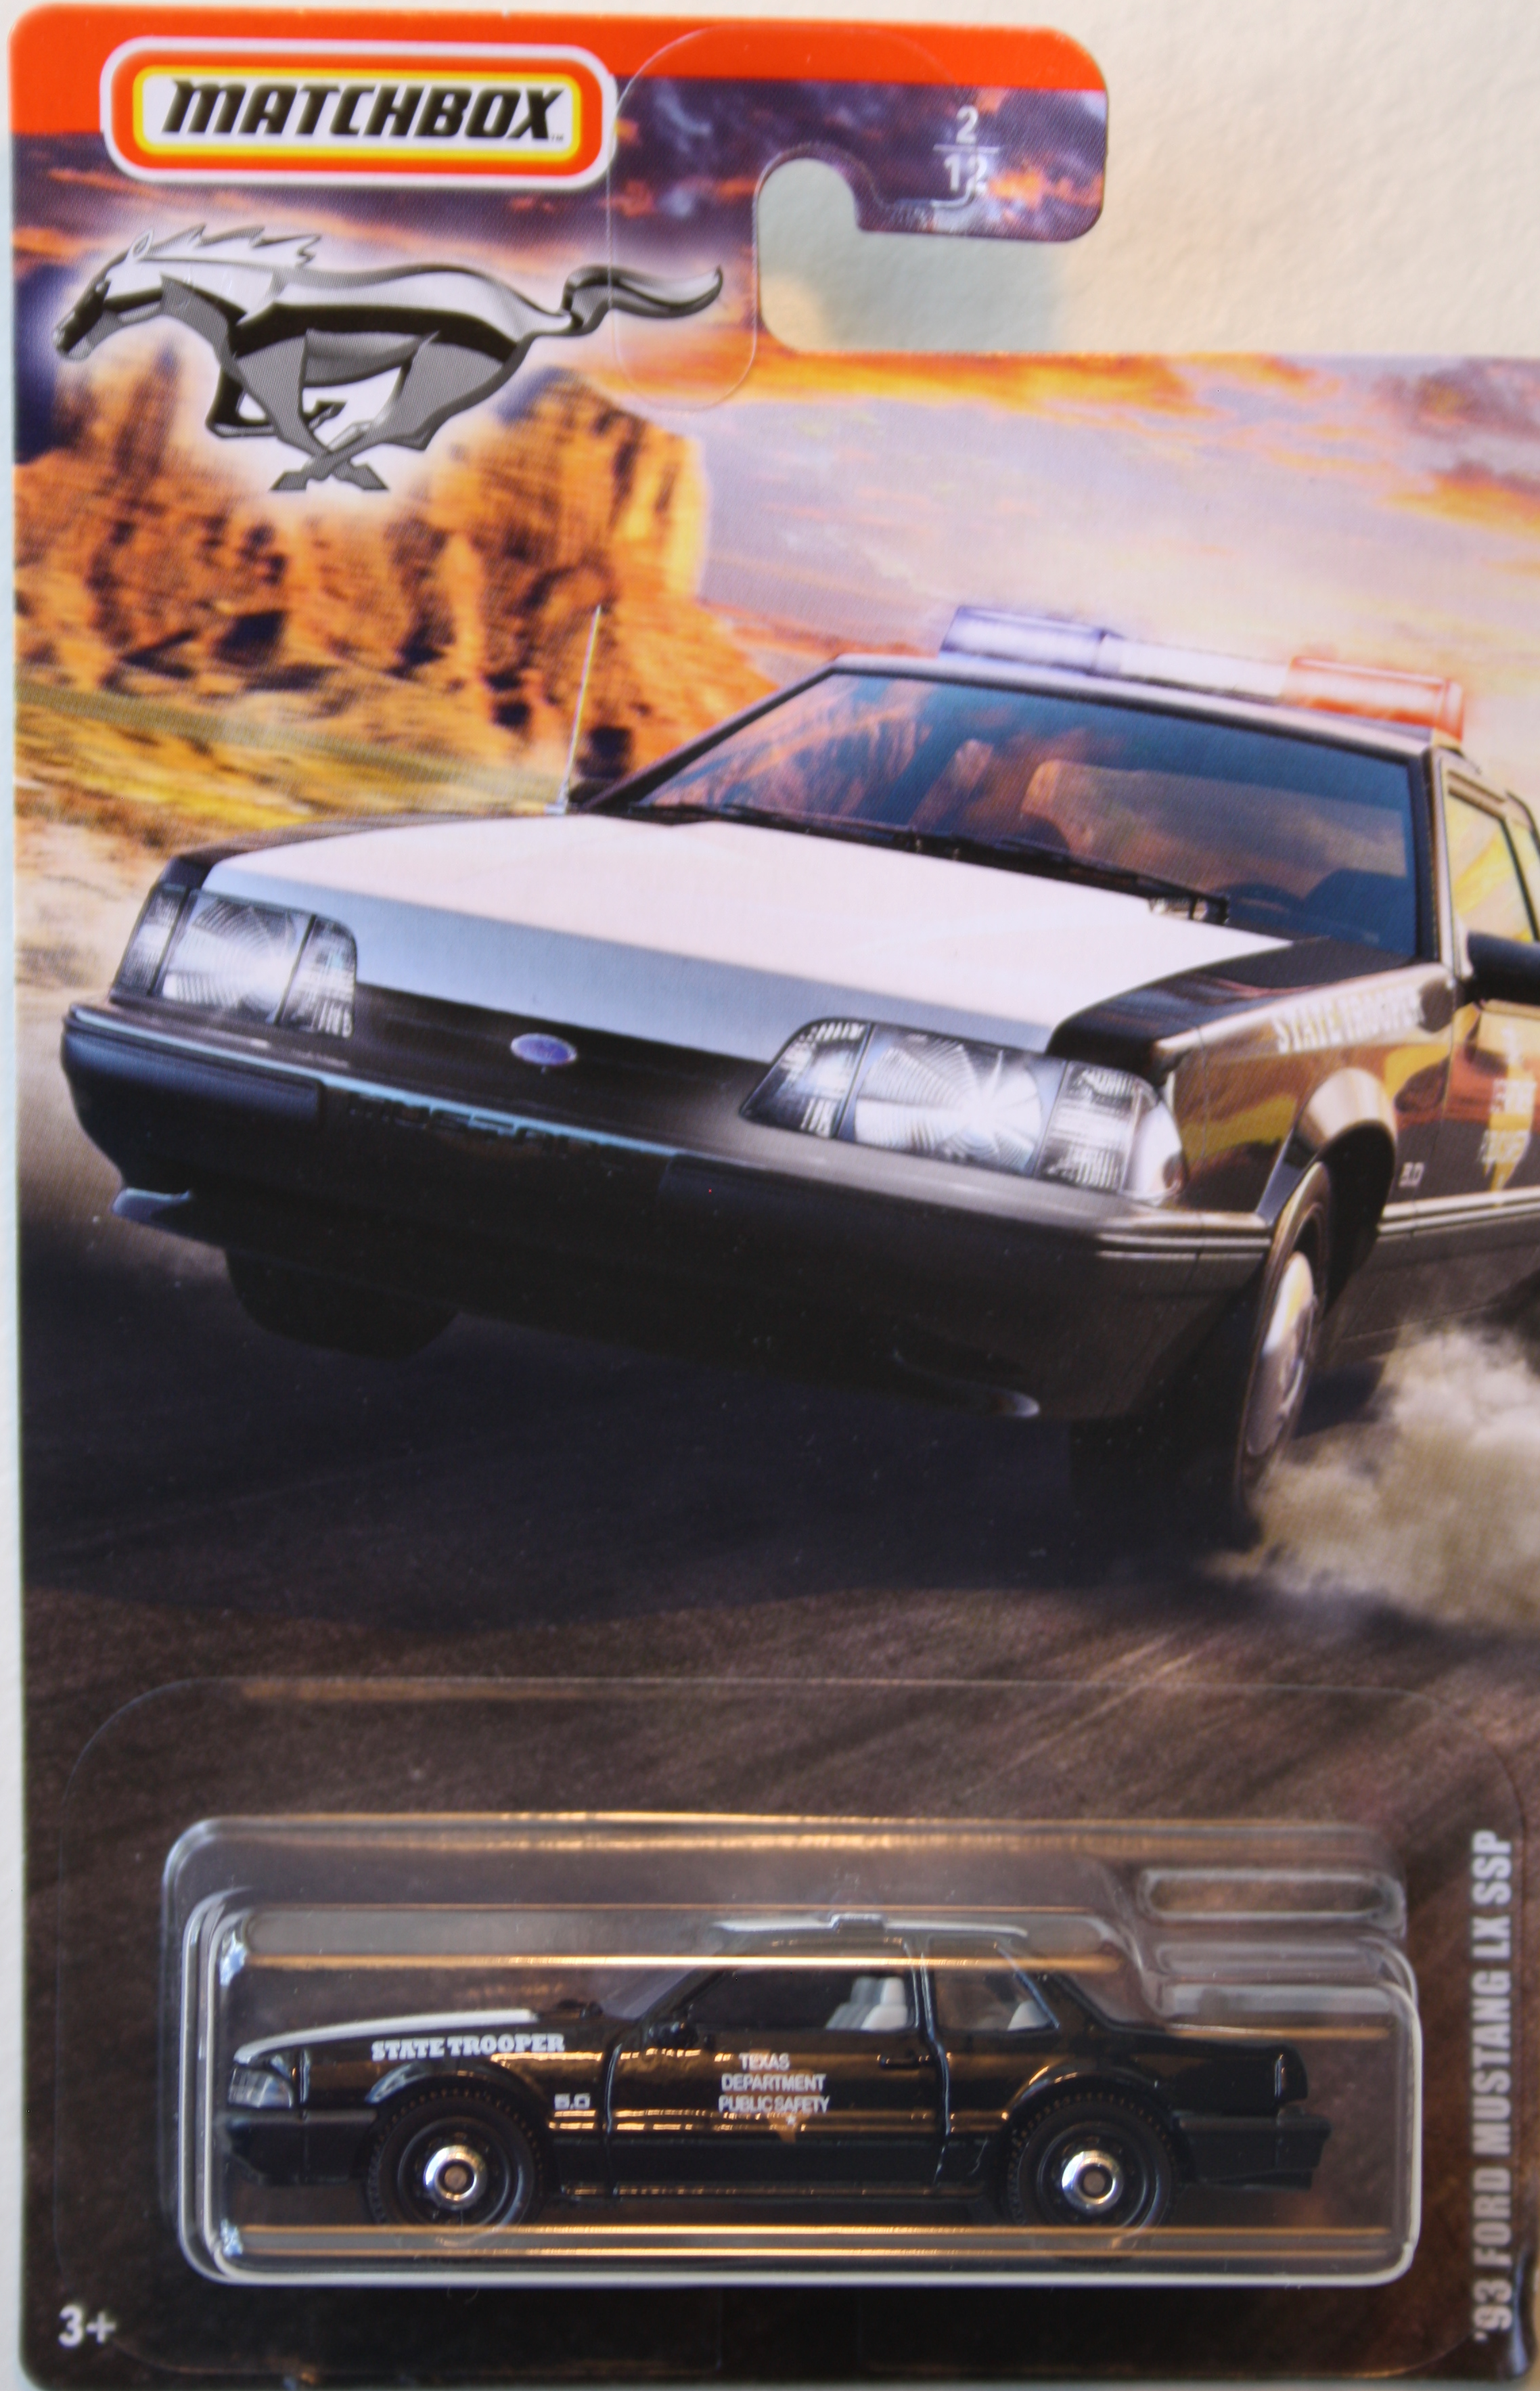 Matchbox 93 Ford Mustang LX SSP, Police